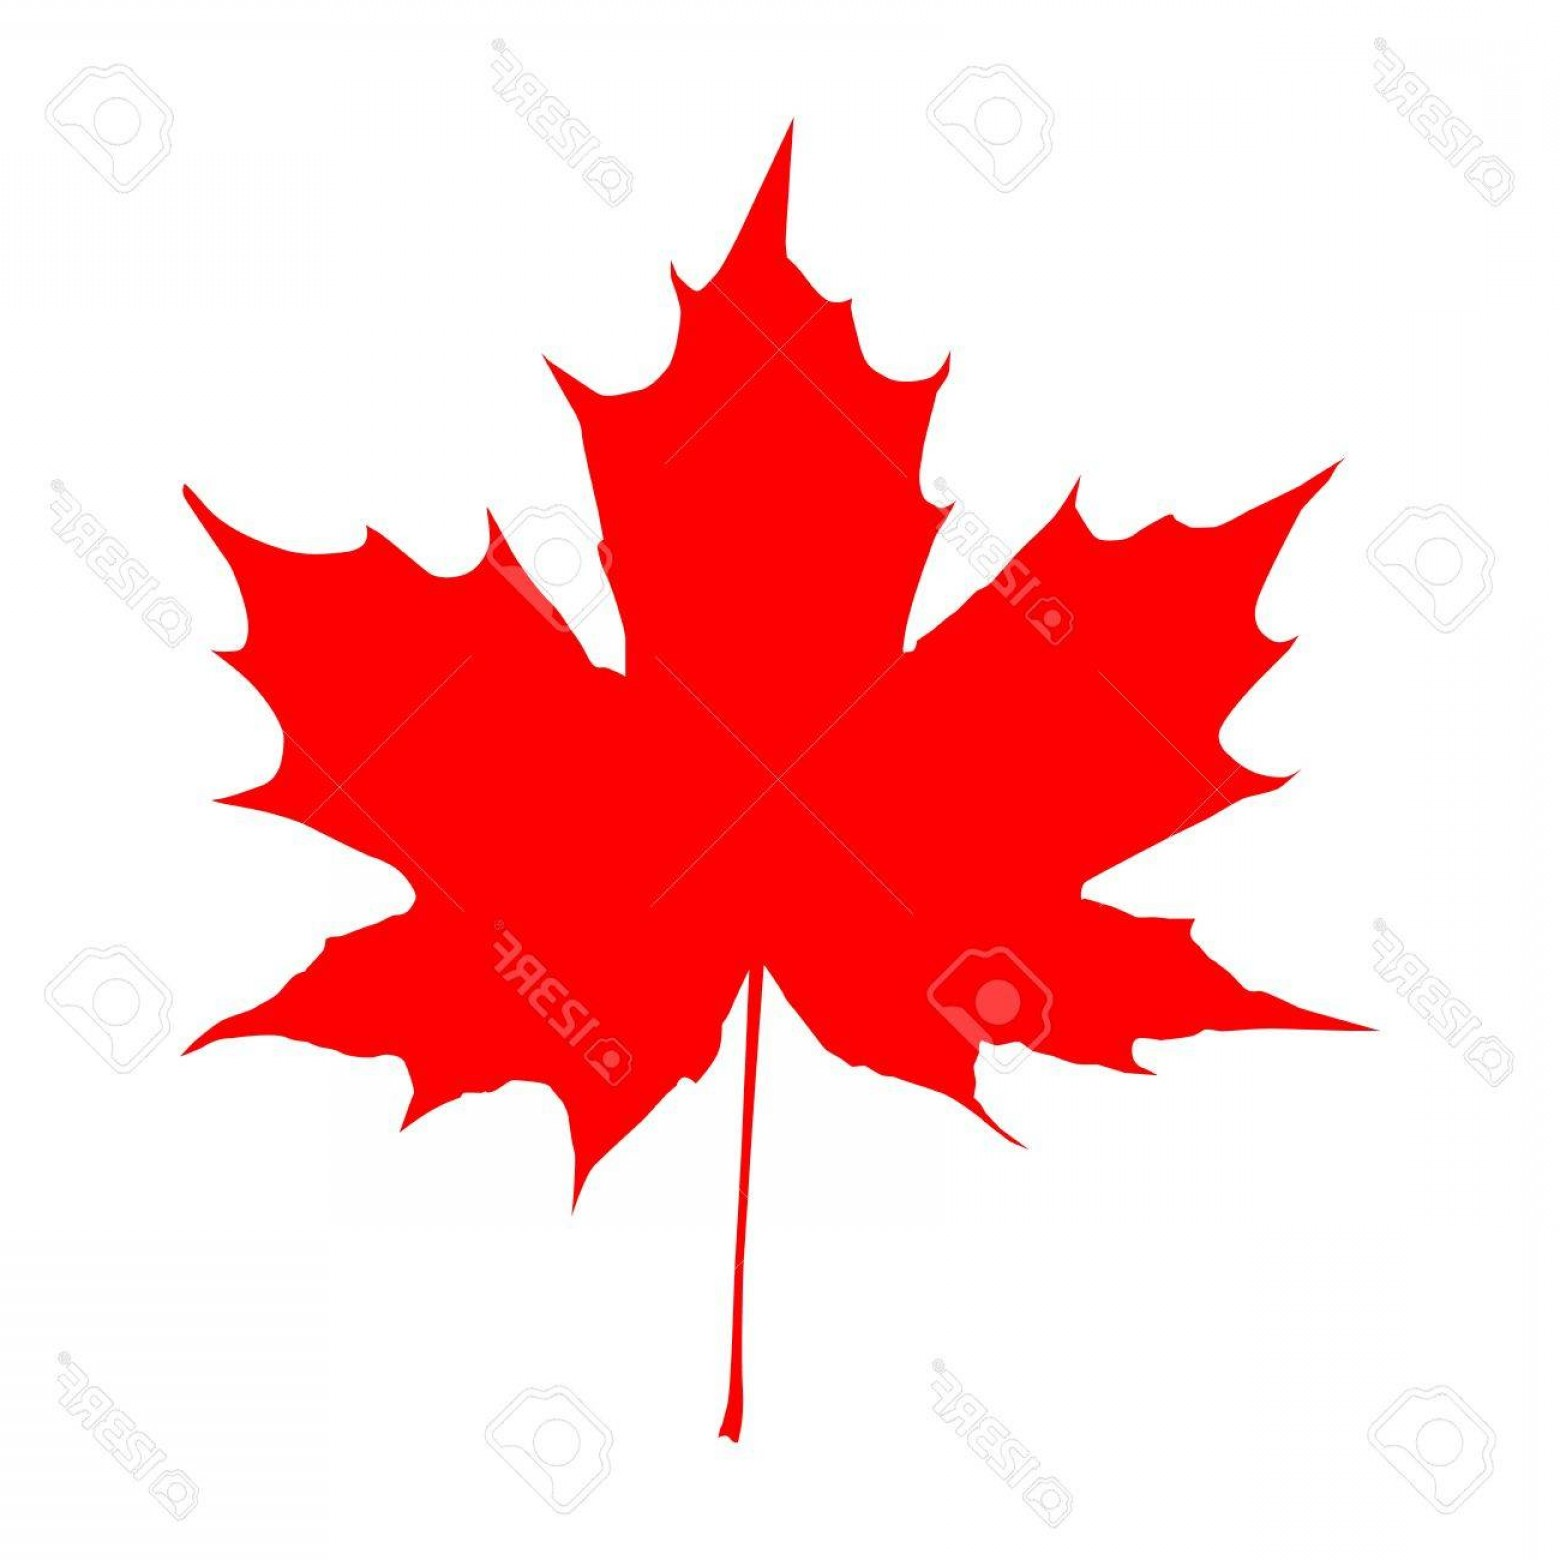 Red Maple Leaf Vector: Photostock Vector Realistic Red Maple Leaf Isolated On White Background Vector Eps Illustration